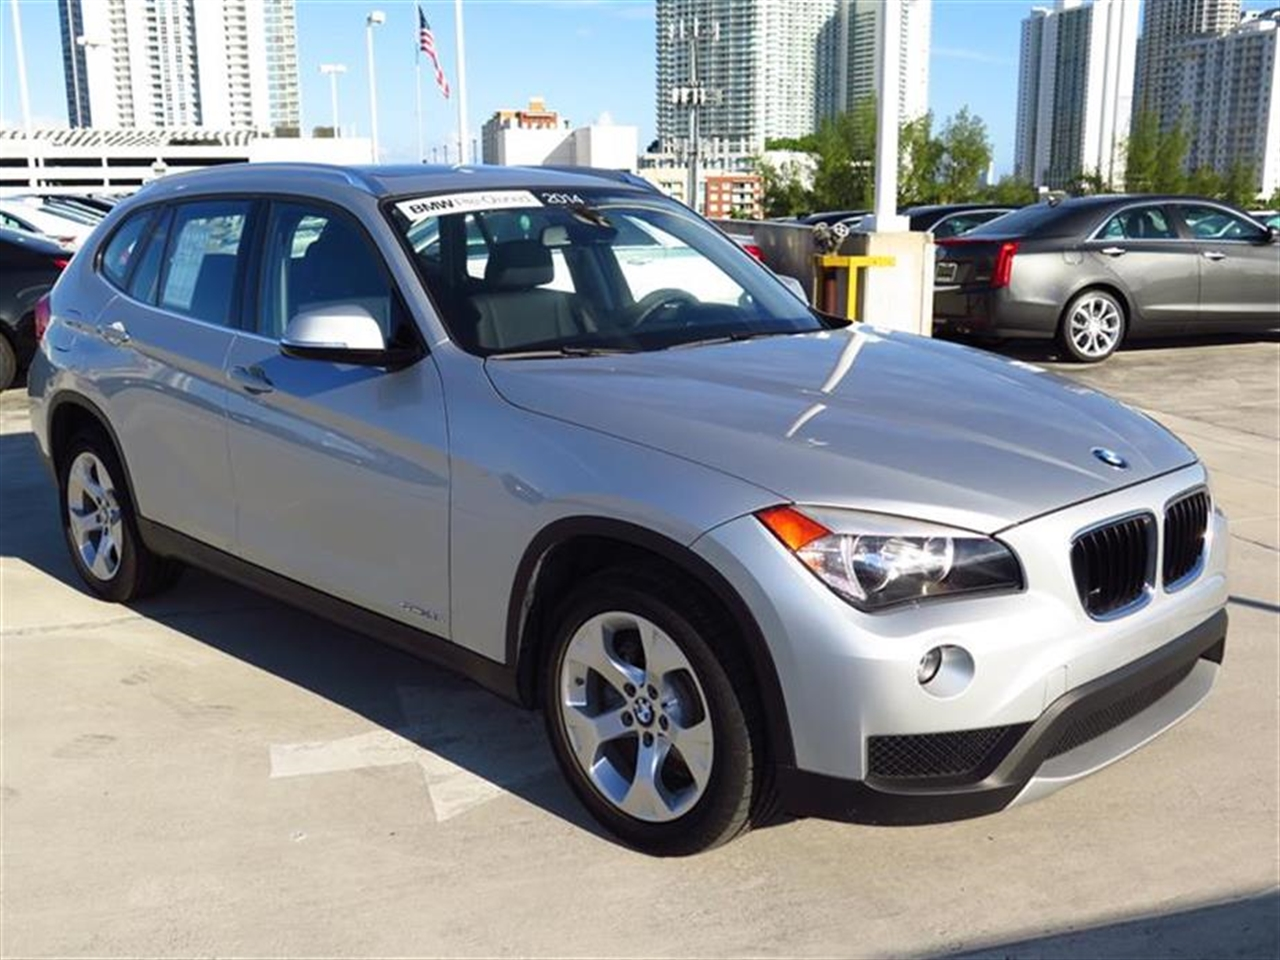 2014 BMW X1 RWD 4dr sDrive28i 9018 miles 2 Seatback Storage Pockets 3 12V DC Power Outlets LEATH